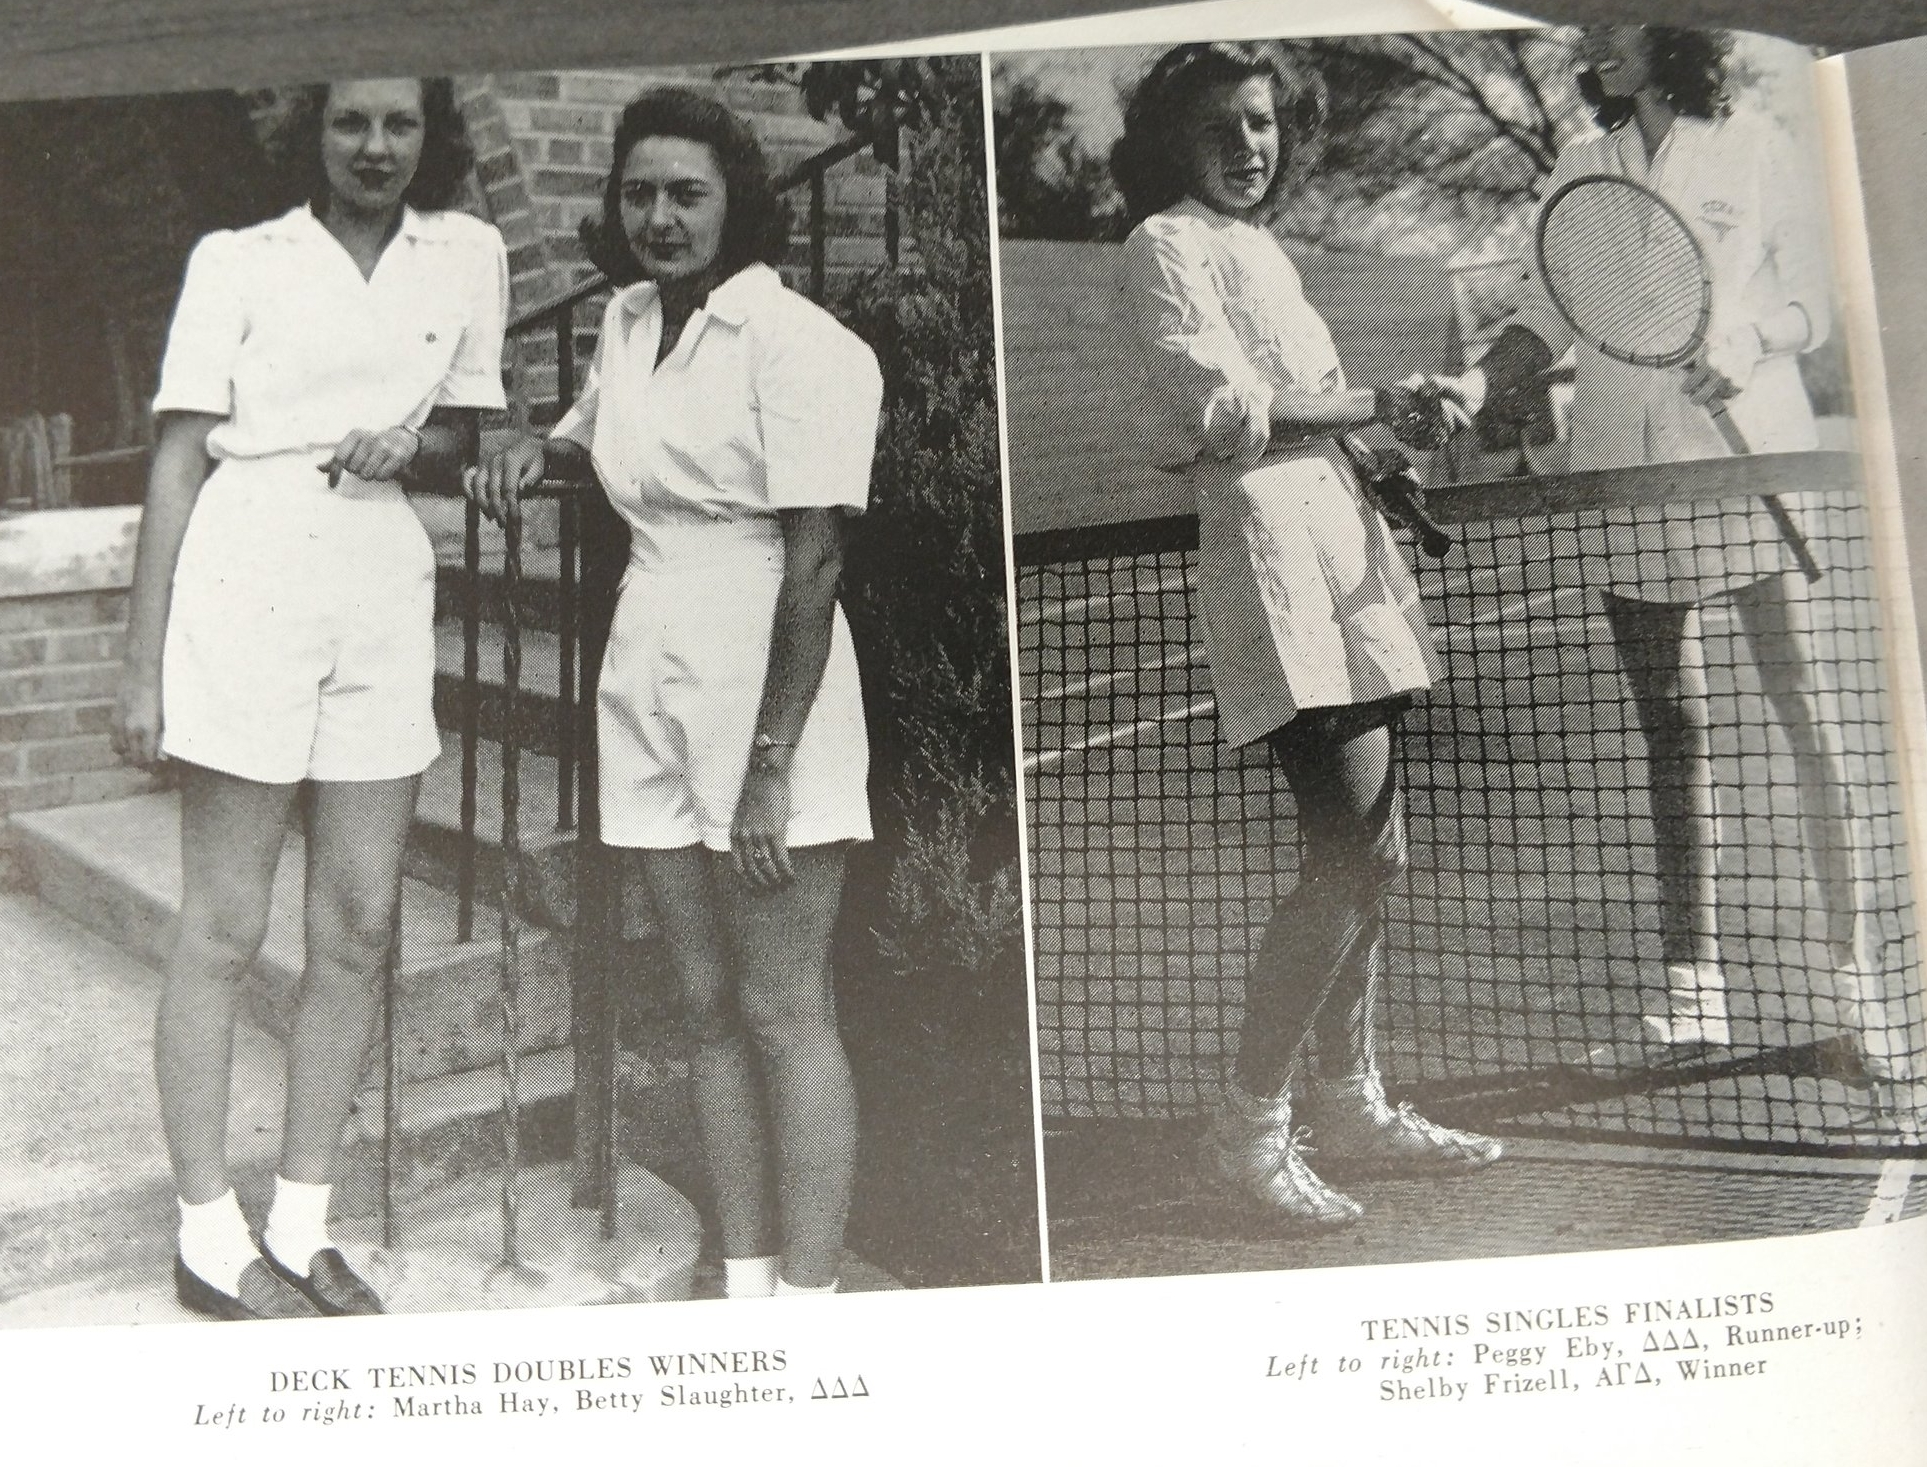 Copy of Doubles winner Marth Hay and Betty Slaughter - Singles winner Shelby Frizell